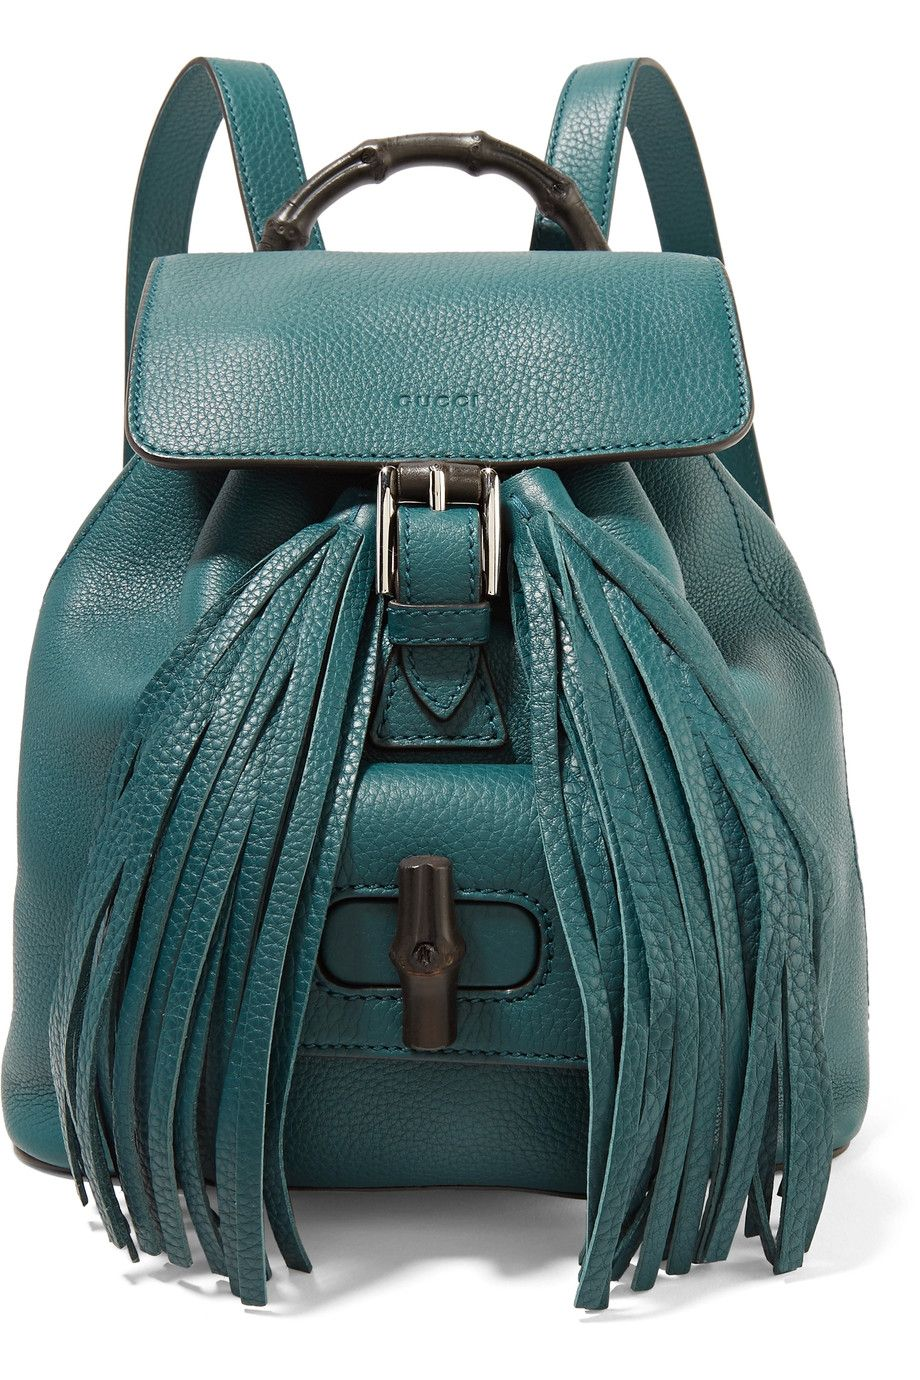 b6d86409245 GUCCI Bamboo-Trimmed Textured-Leather Backpack.  gucci  bags  leather   canvas  backpacks